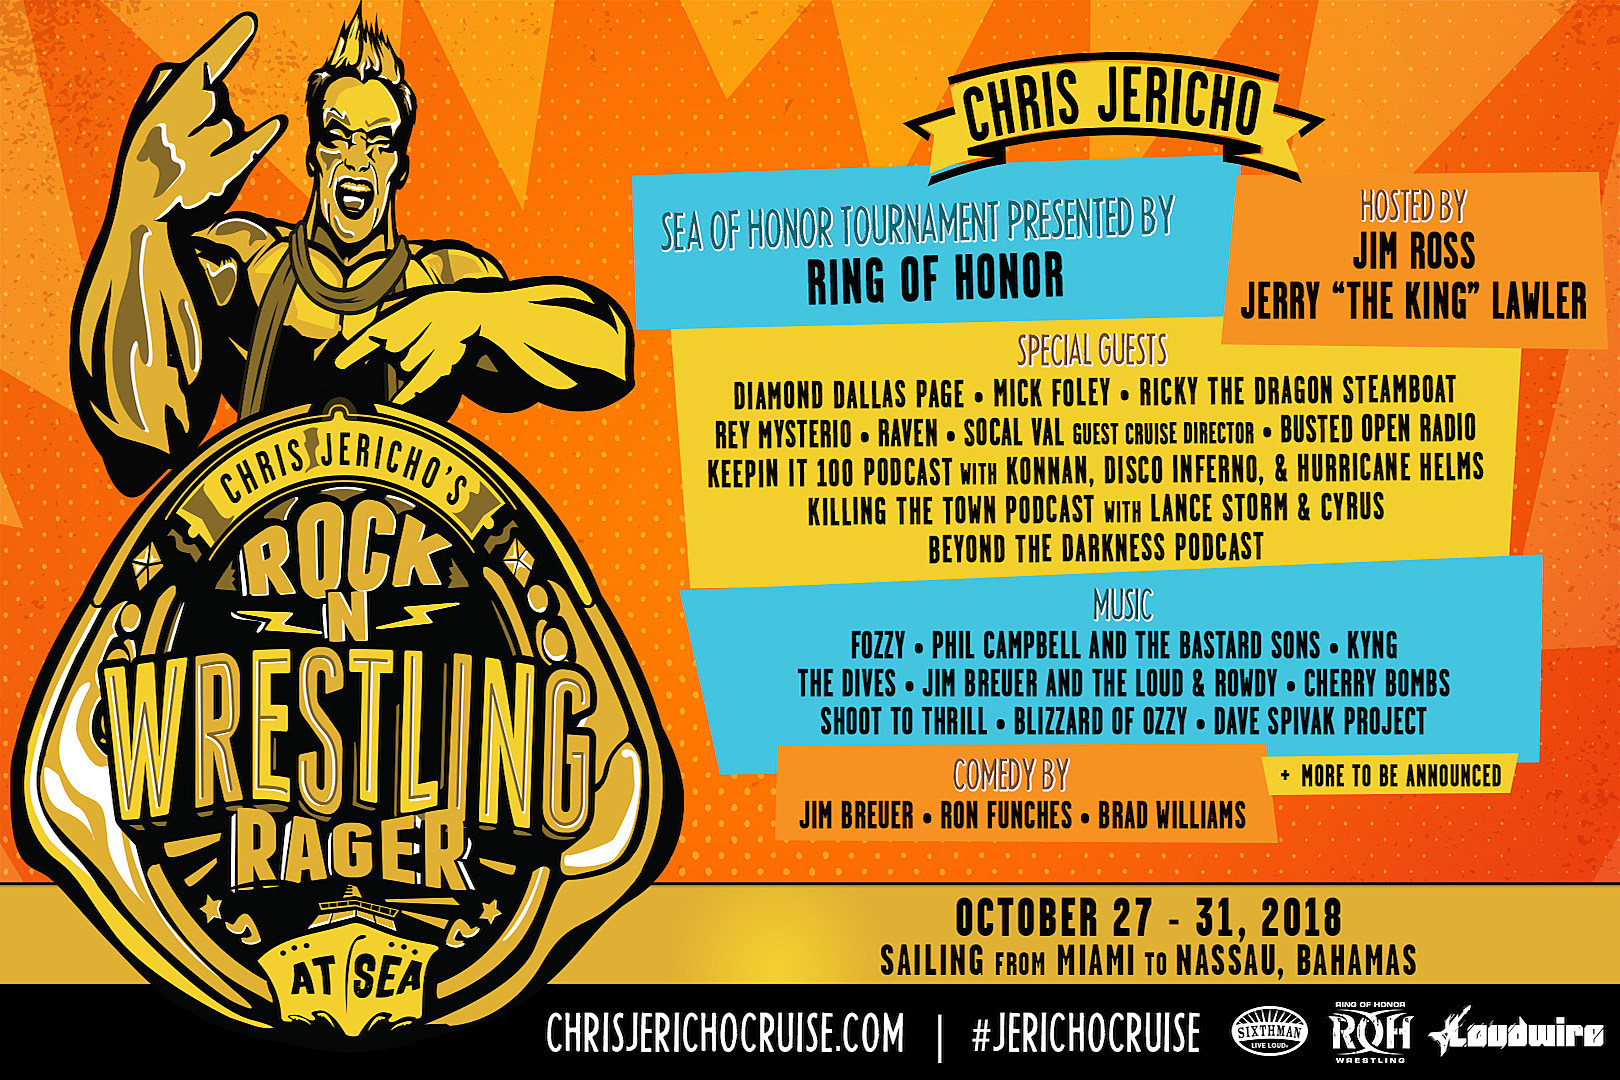 Set Sail to Paradise With Y2J on Chris Jericho's Rock N' Wrestling Rager at Sea